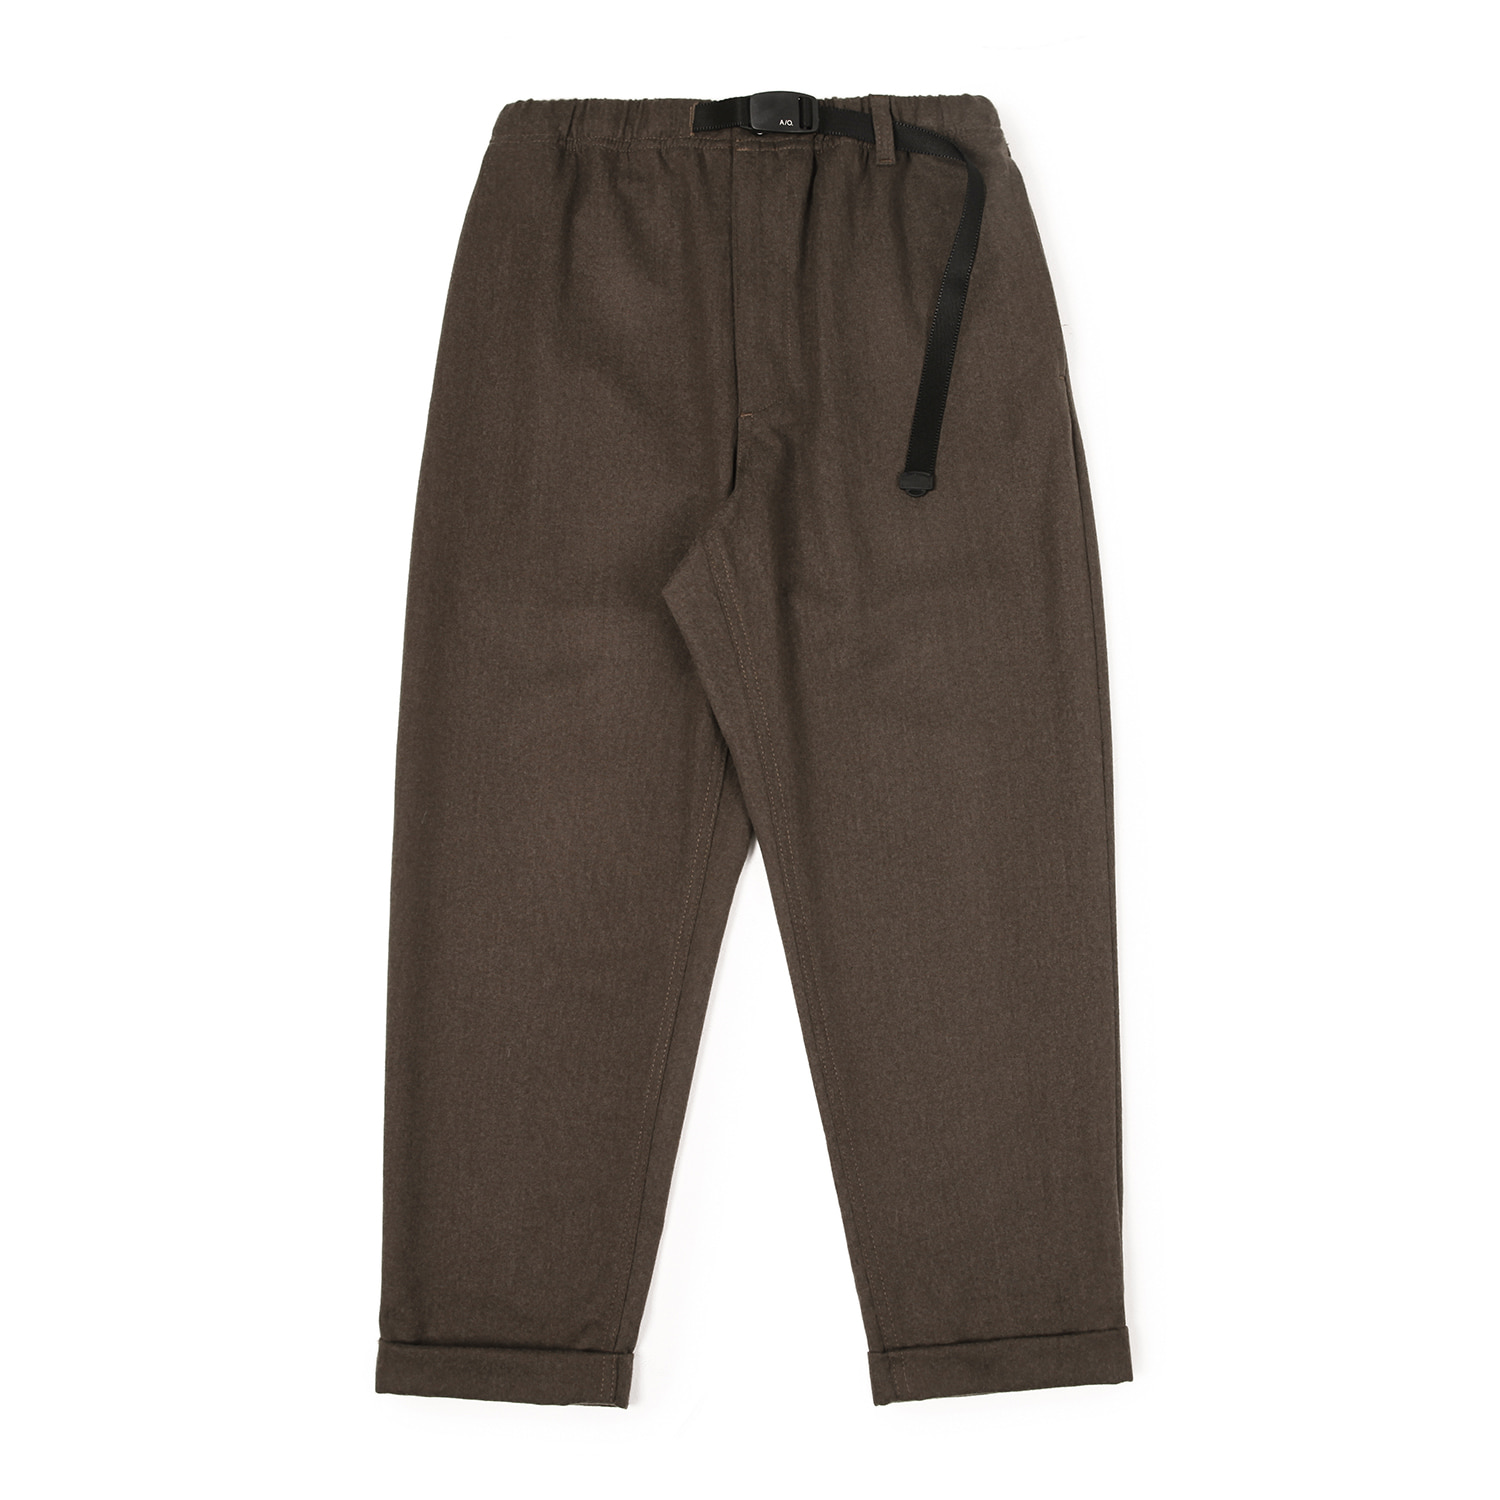 25% OFF_Stroller Herringbone Pants (Brown)